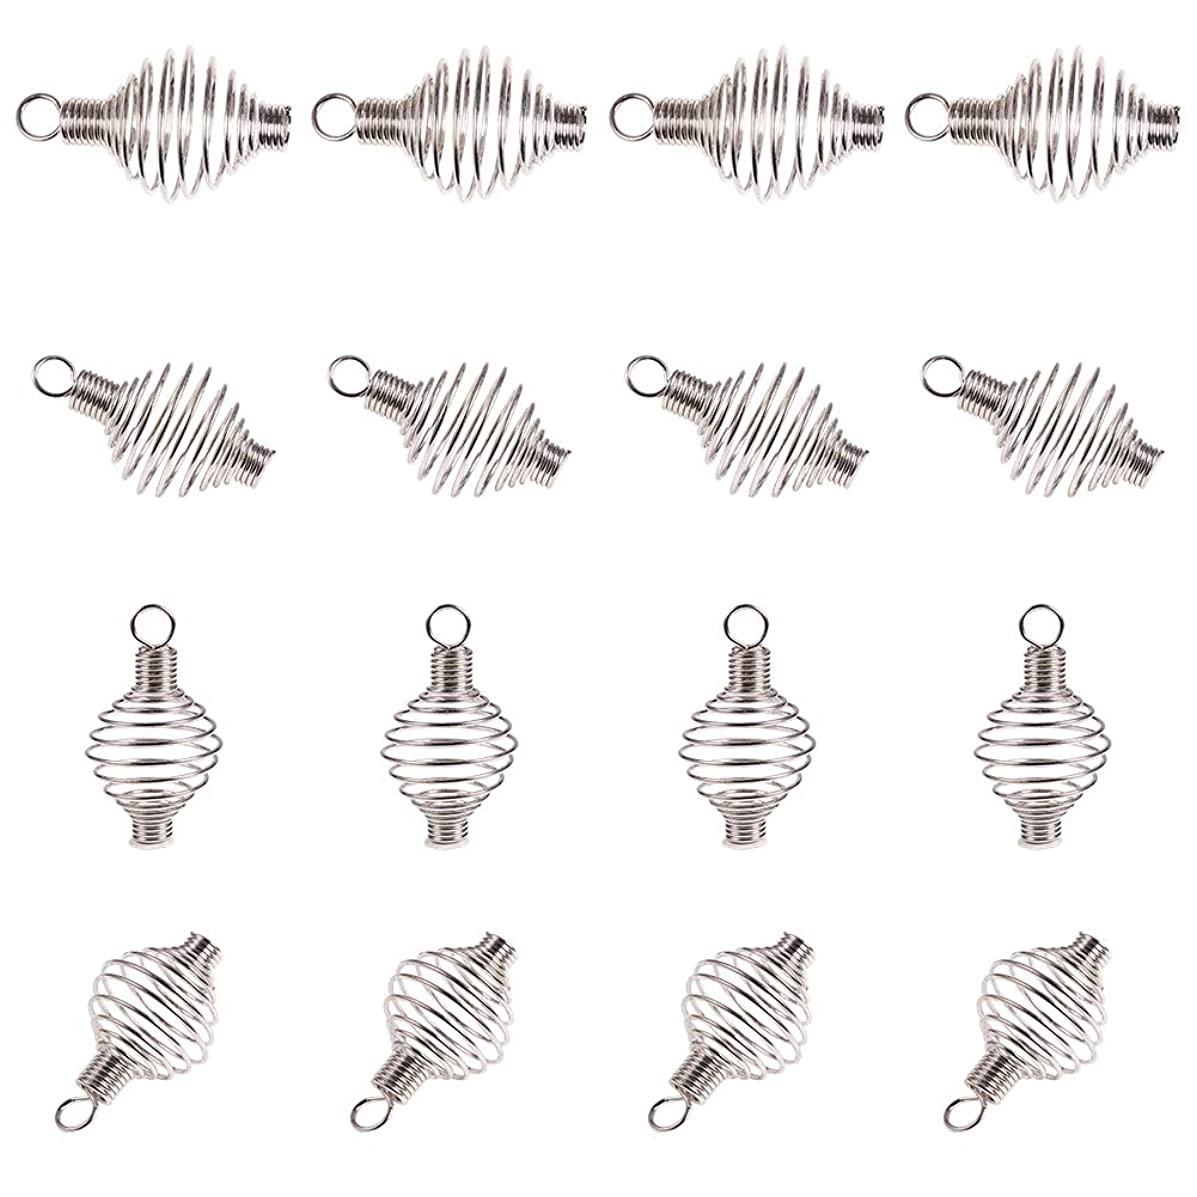 PandaHall 100 Pcs 304 Stainless Steel Wrap-Around Spiral Round Bead Cages Pendant Charm 34x19mm for Jewelry Making